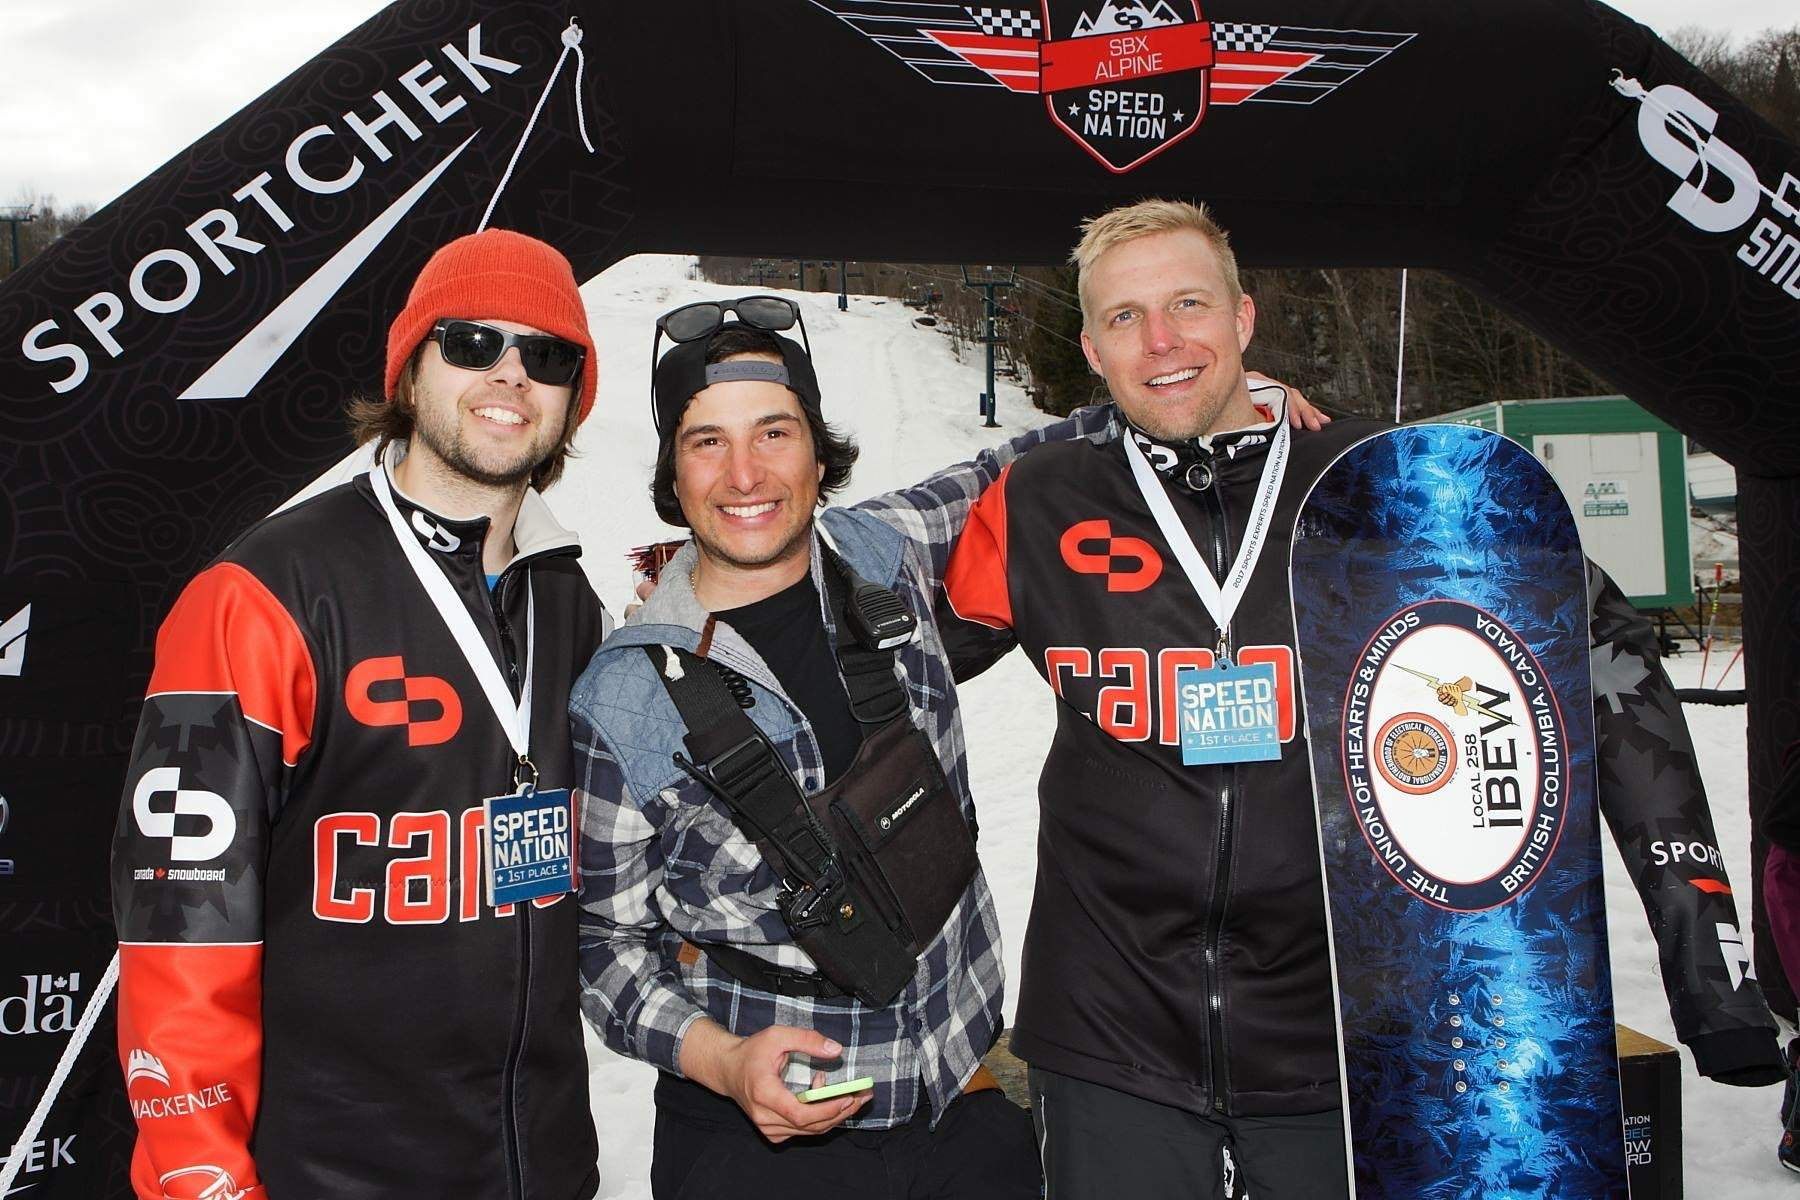 3-time Canadian National Champion, Minard seen on right